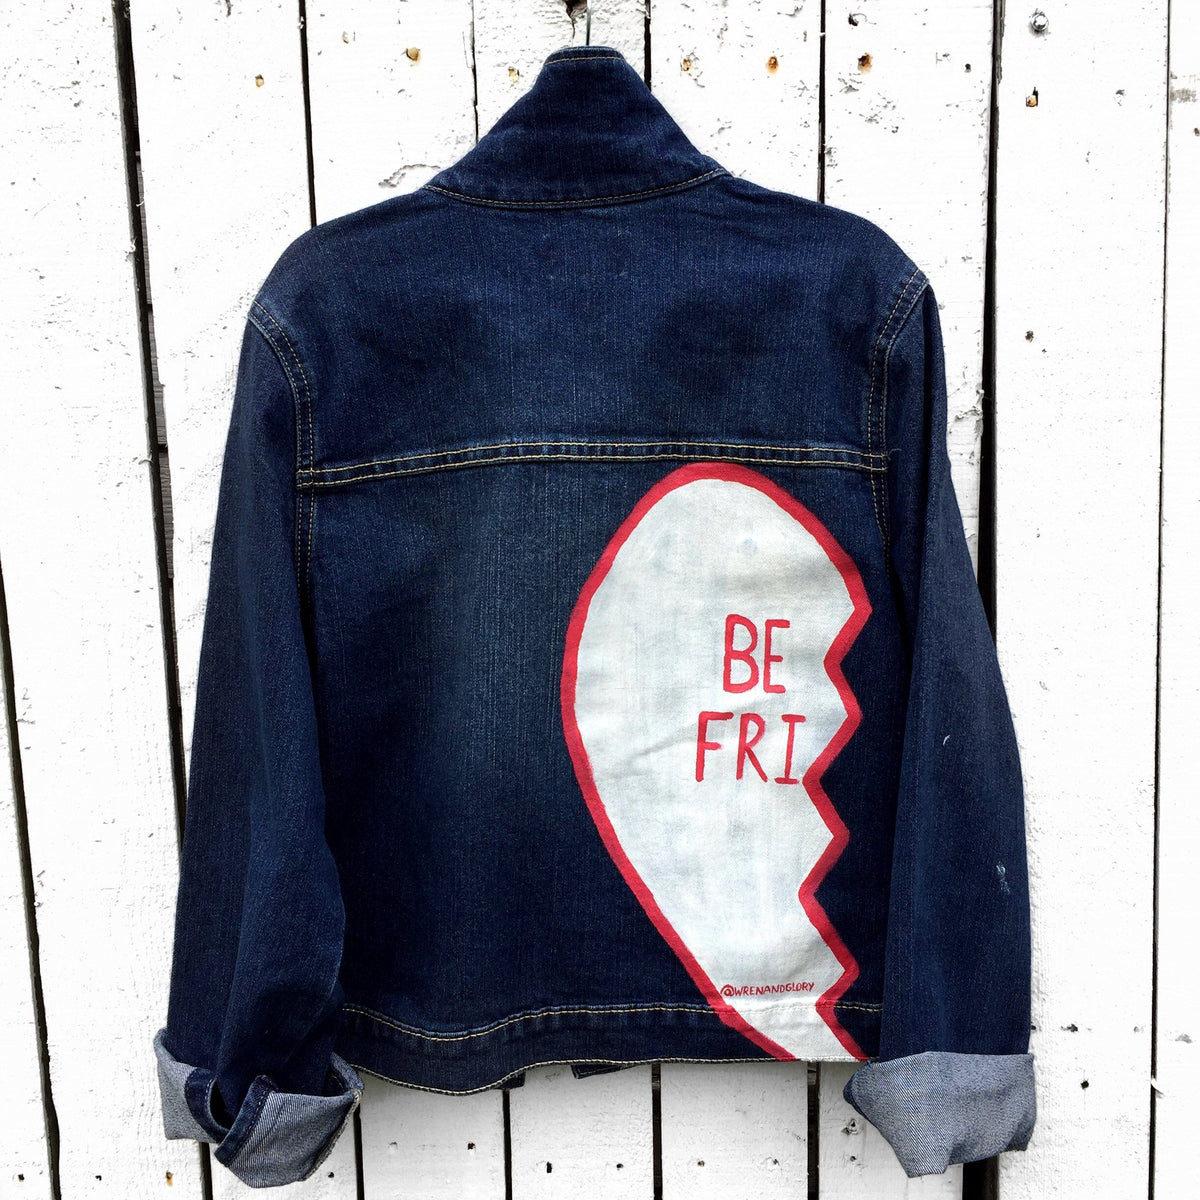 Medium blue denim wash. Broken hearts, one on each jacket, with BEST FRIENDS split up between the 2 jackets. White stripes on diagonal on fronts, pockets painted white. Signed @wrenandglory.